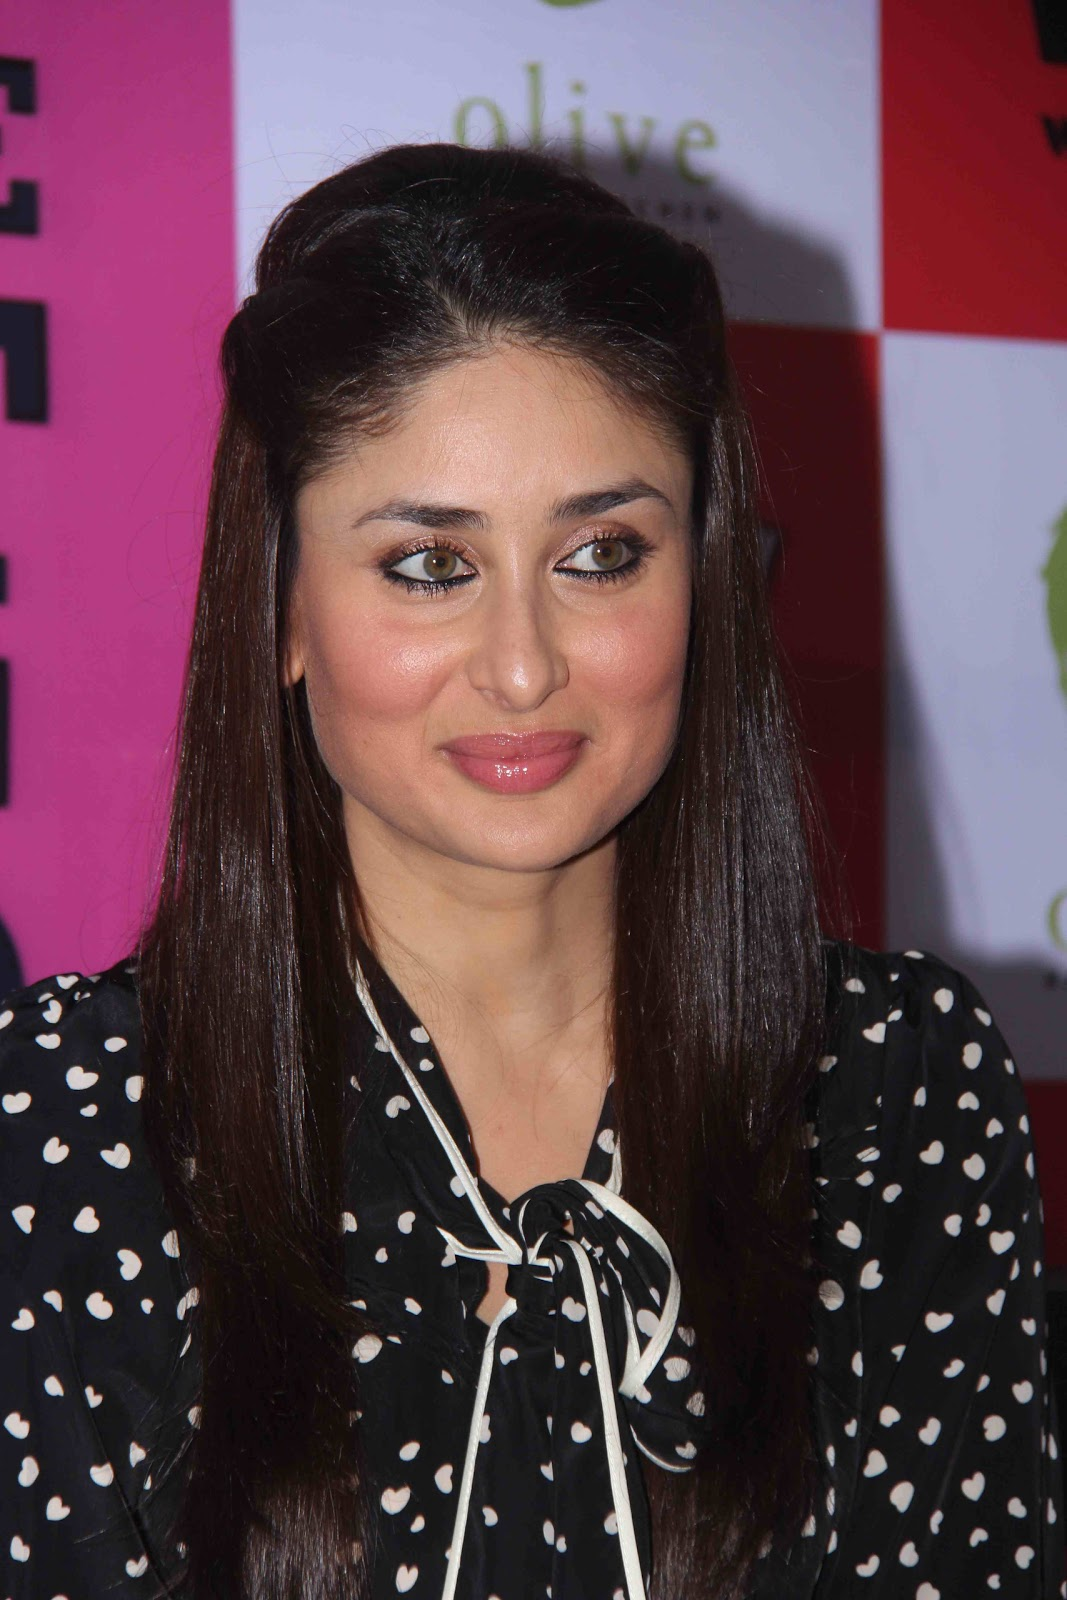 High Quality Bollywood Celebrity Pictures Kareena Kapoor -1120